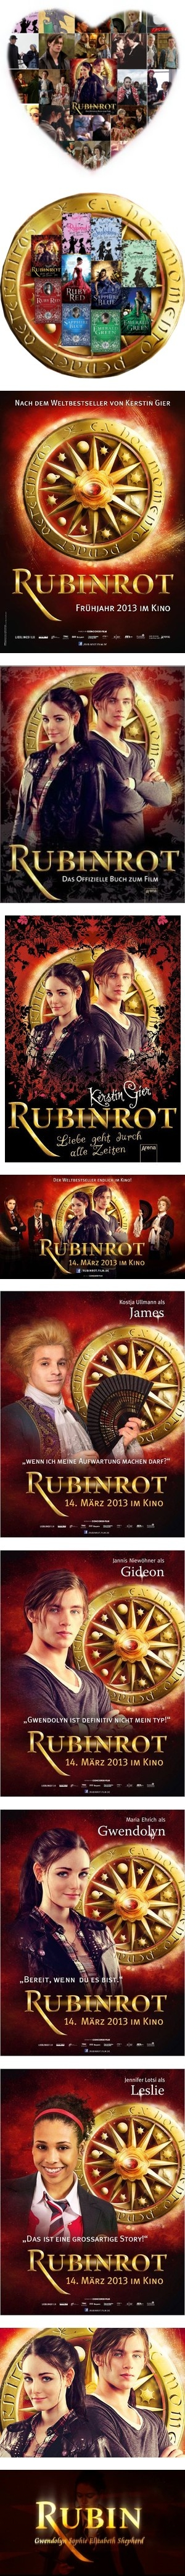 Rubinrot poster and picture board